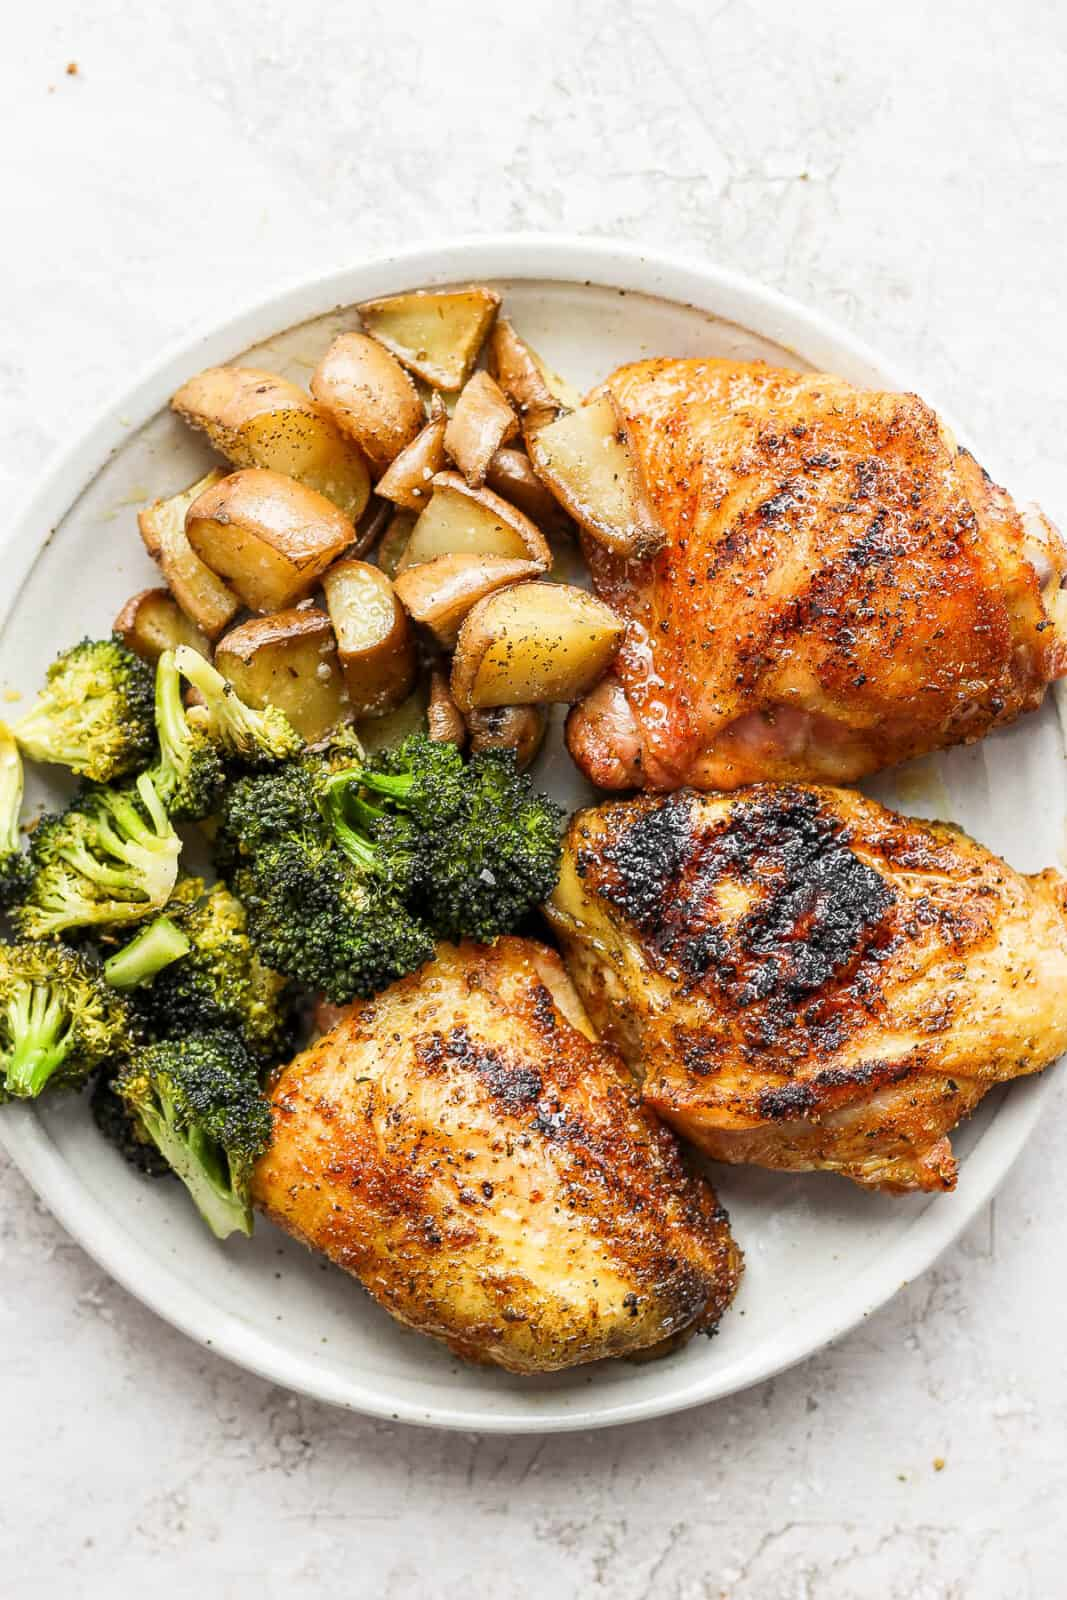 A plate of smoked chicken thighs, smoked broccoli and smoked potatoes.